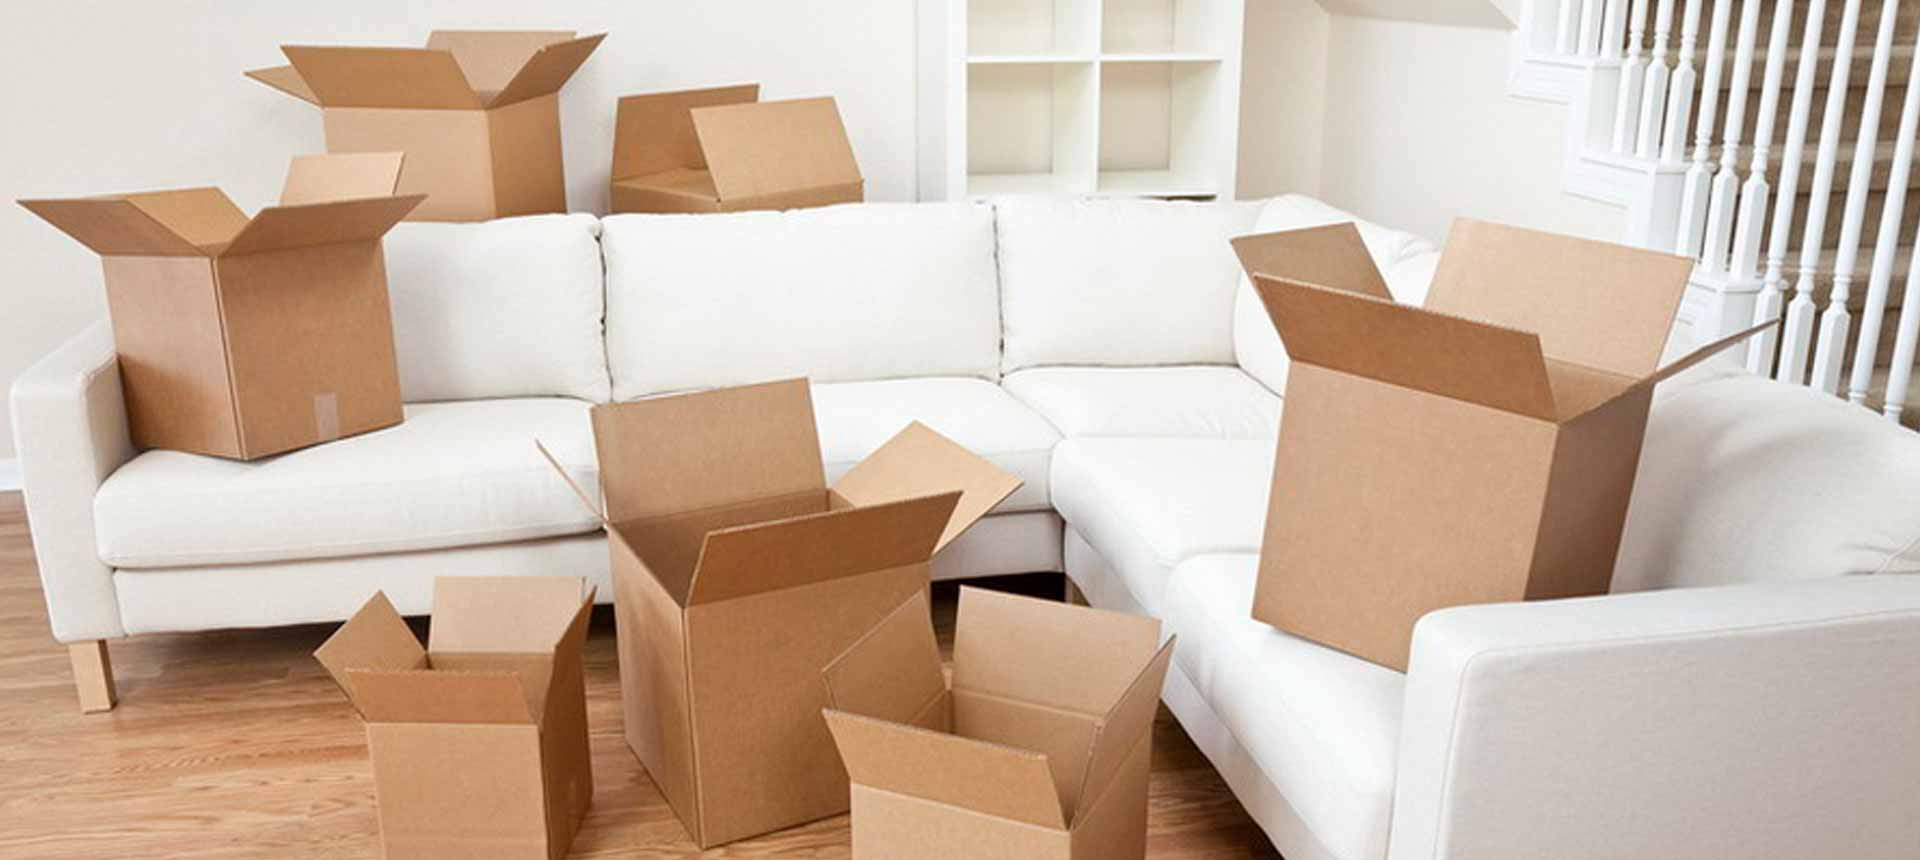 Removals and Storage Near Me London Putney